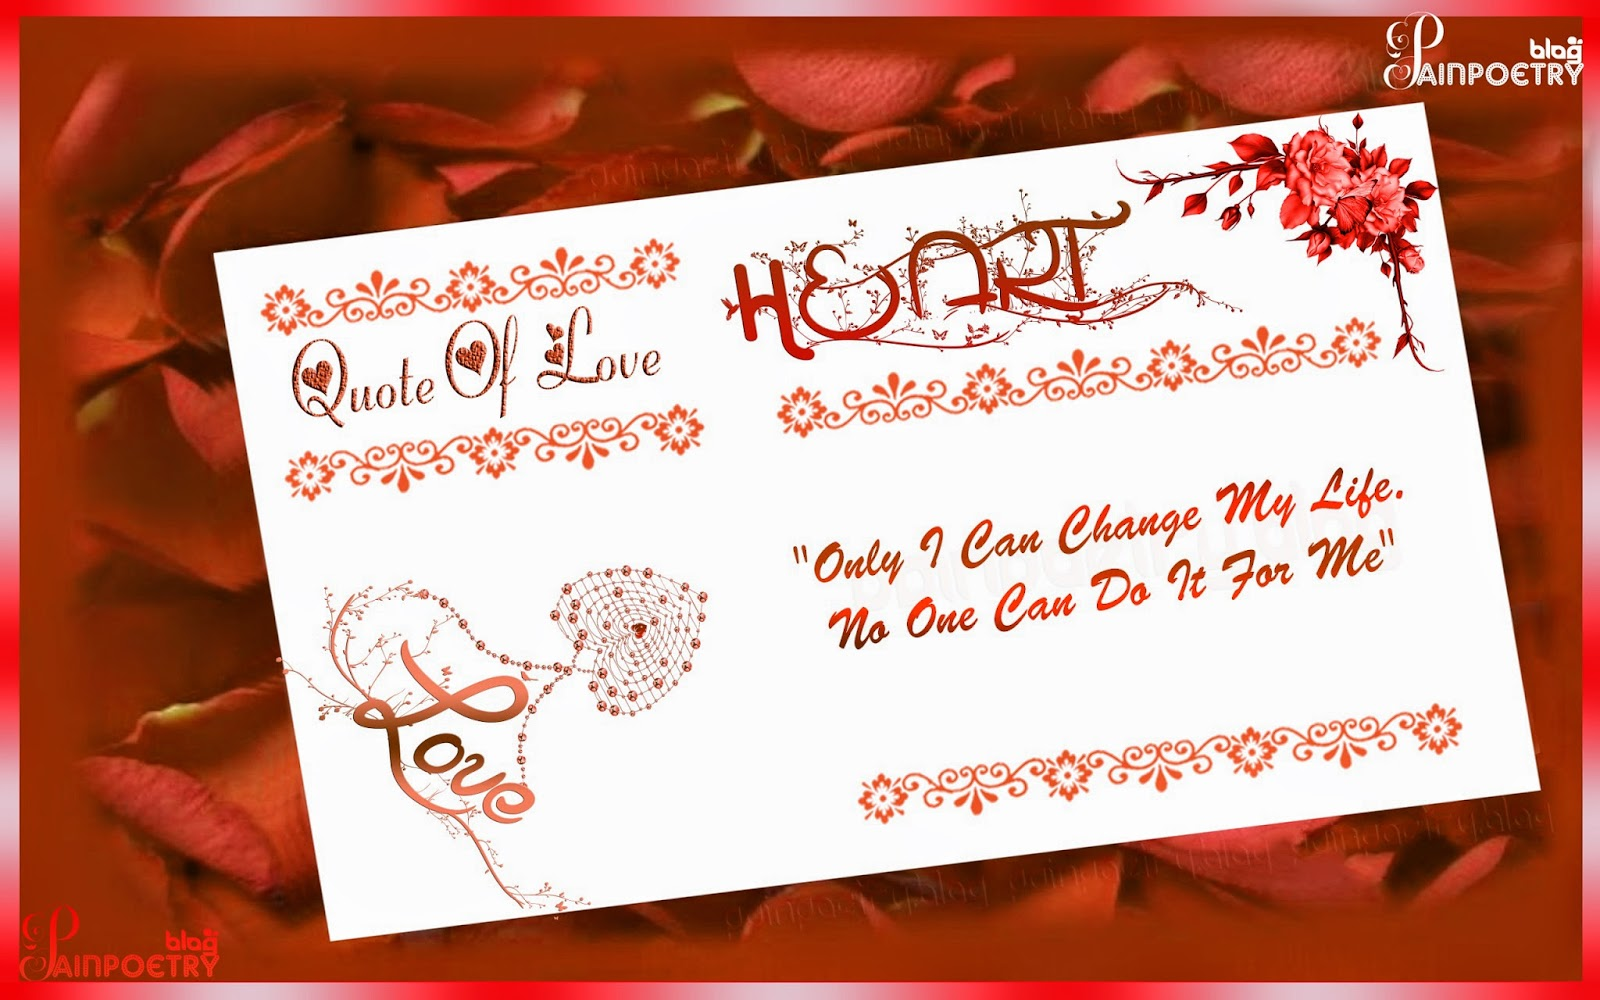 Love-Greeting-Quote-For-Him-Love-Image-Inspirational-HD-Wide